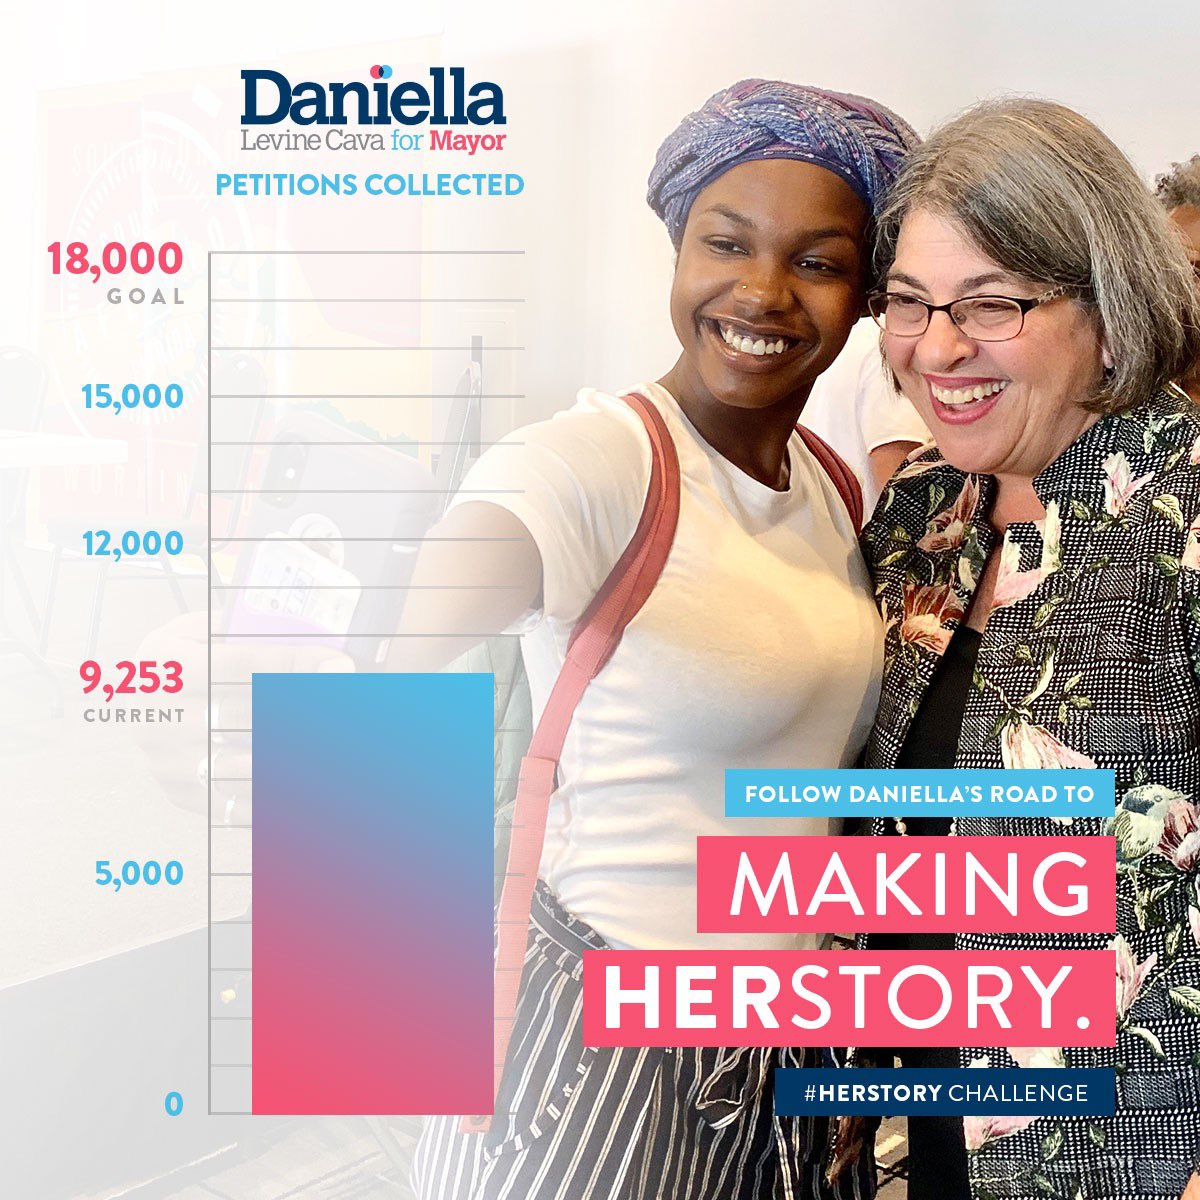 This year, we're going to make history — or as we say, HERStory — by becoming the first campaign for Miami-Dade County Mayor ever to qualify by petition. Can you help by committing to collect 1 petition per day between now and April 1st?   Sign up at http://daniella.vote/herstorychallenge … now!